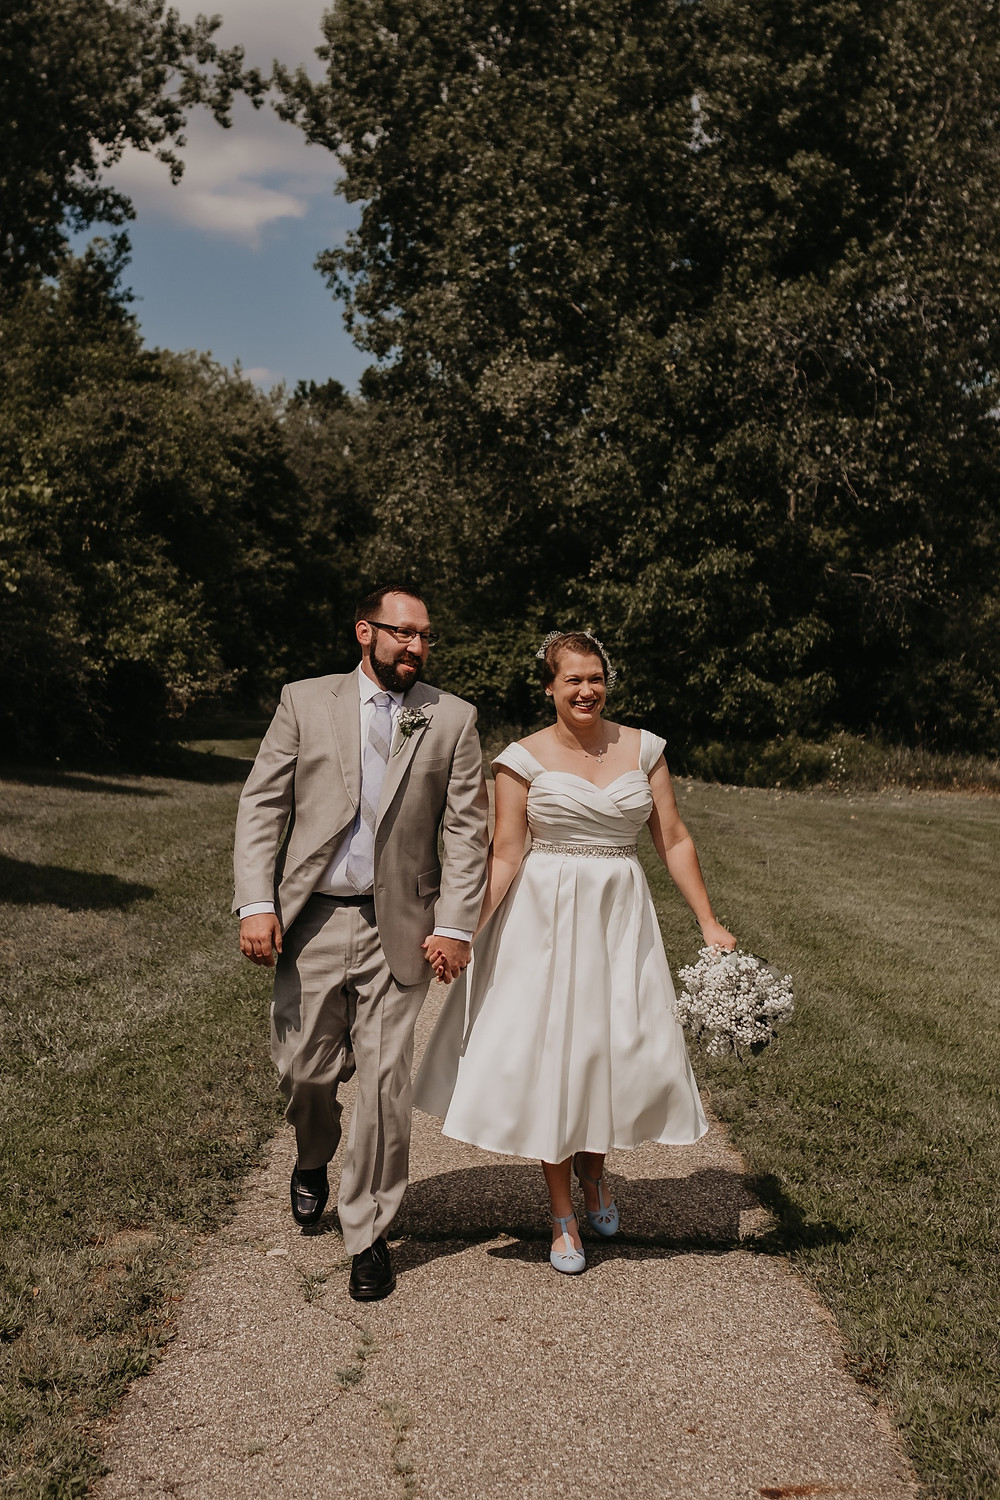 Meridian Historical Village wedding photos. Photographed by Nicole Leanne Photography.